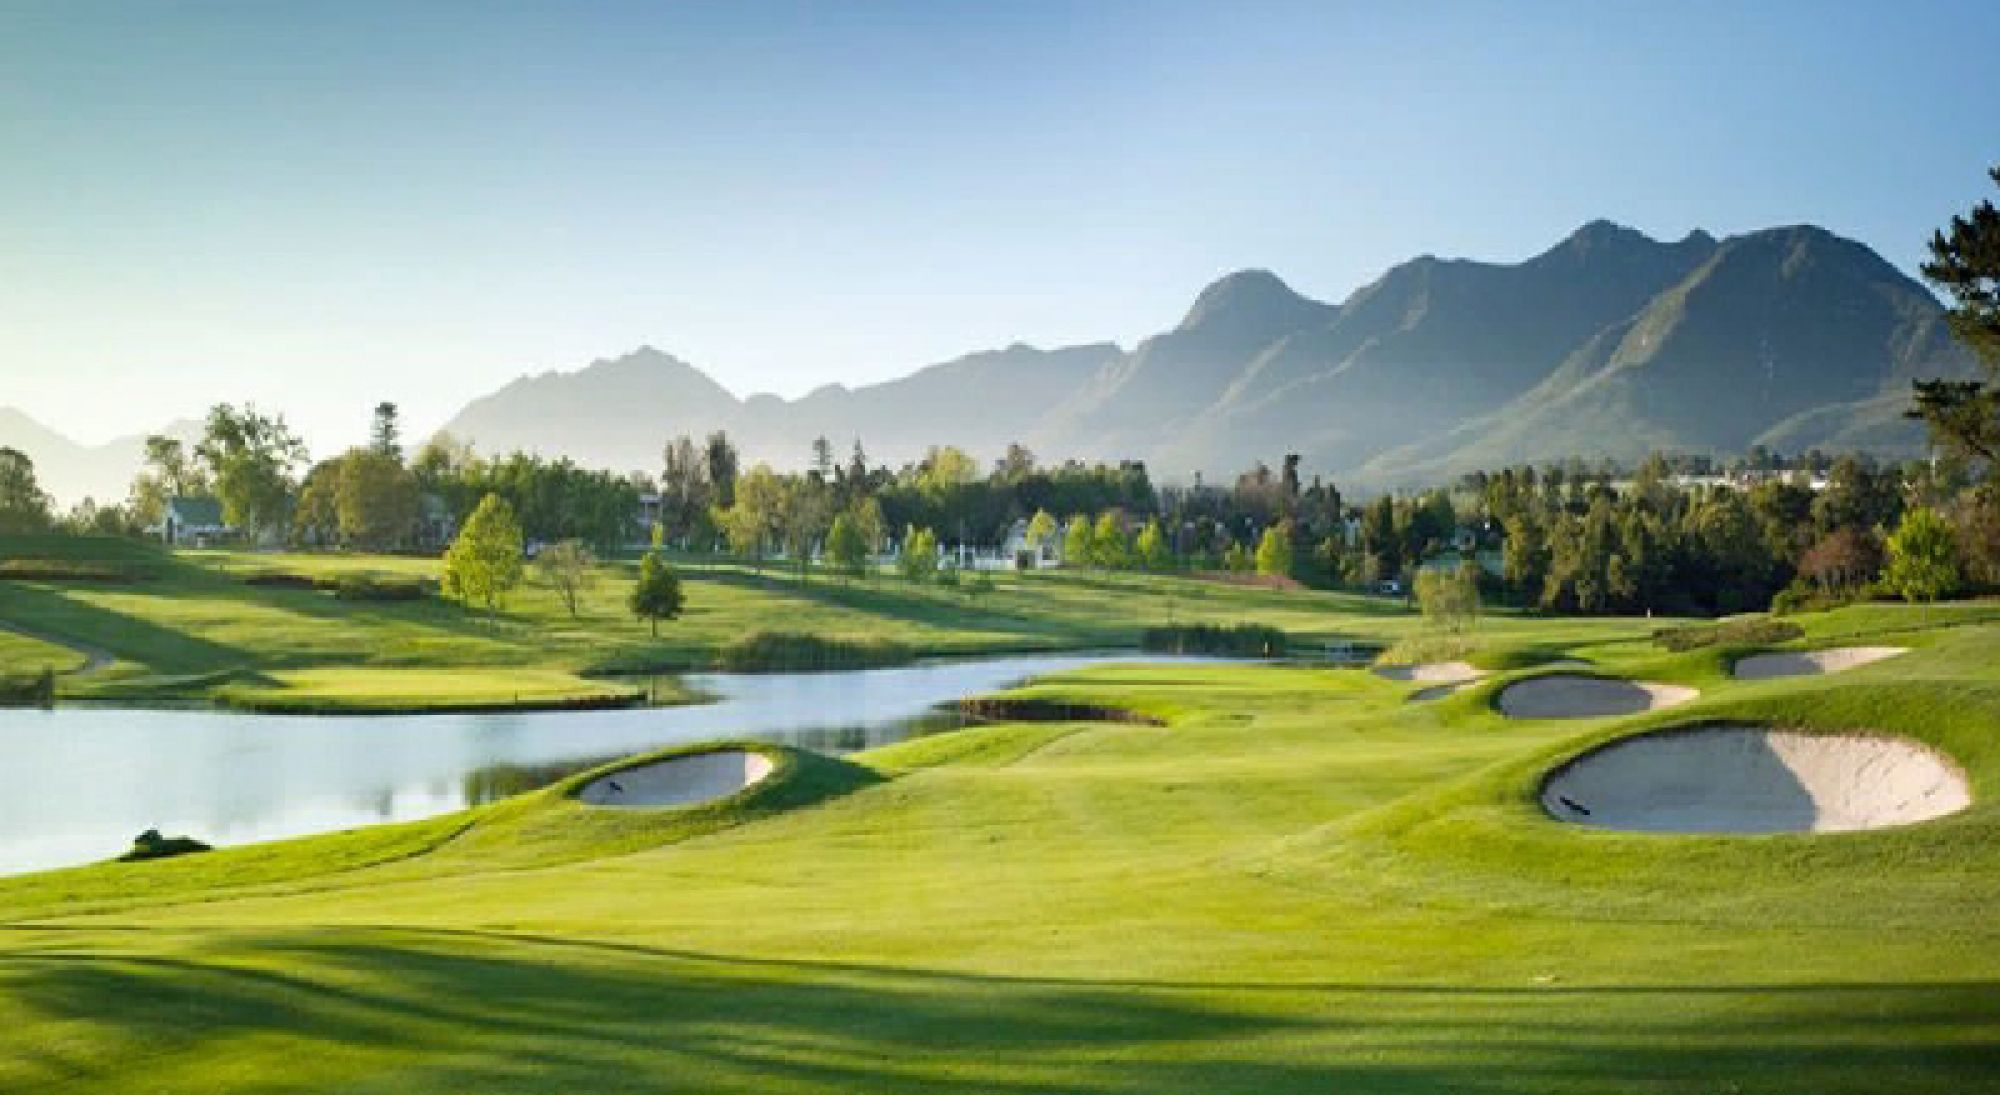 The Fancourt Outeniqua Course's picturesque golf course in stunning South Africa.